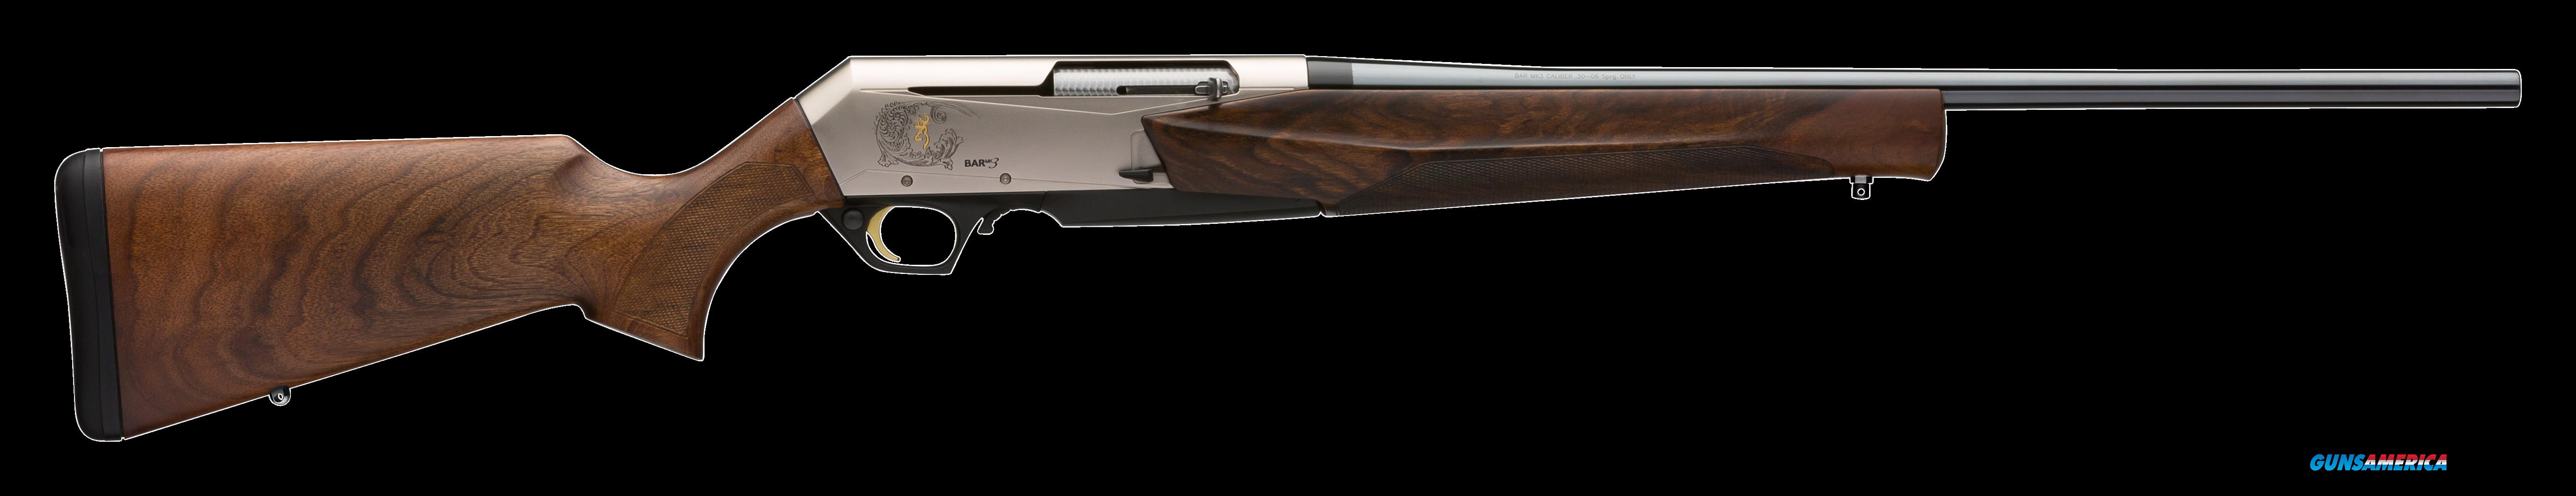 "Browning 031047218 BAR MK3 Semi-Automatic 308 Winchester/7.62 NATO 22"" 4+1 Turkish Walnut Stock  Guns > Rifles > Browning Rifles > Semi Auto > Hunting"